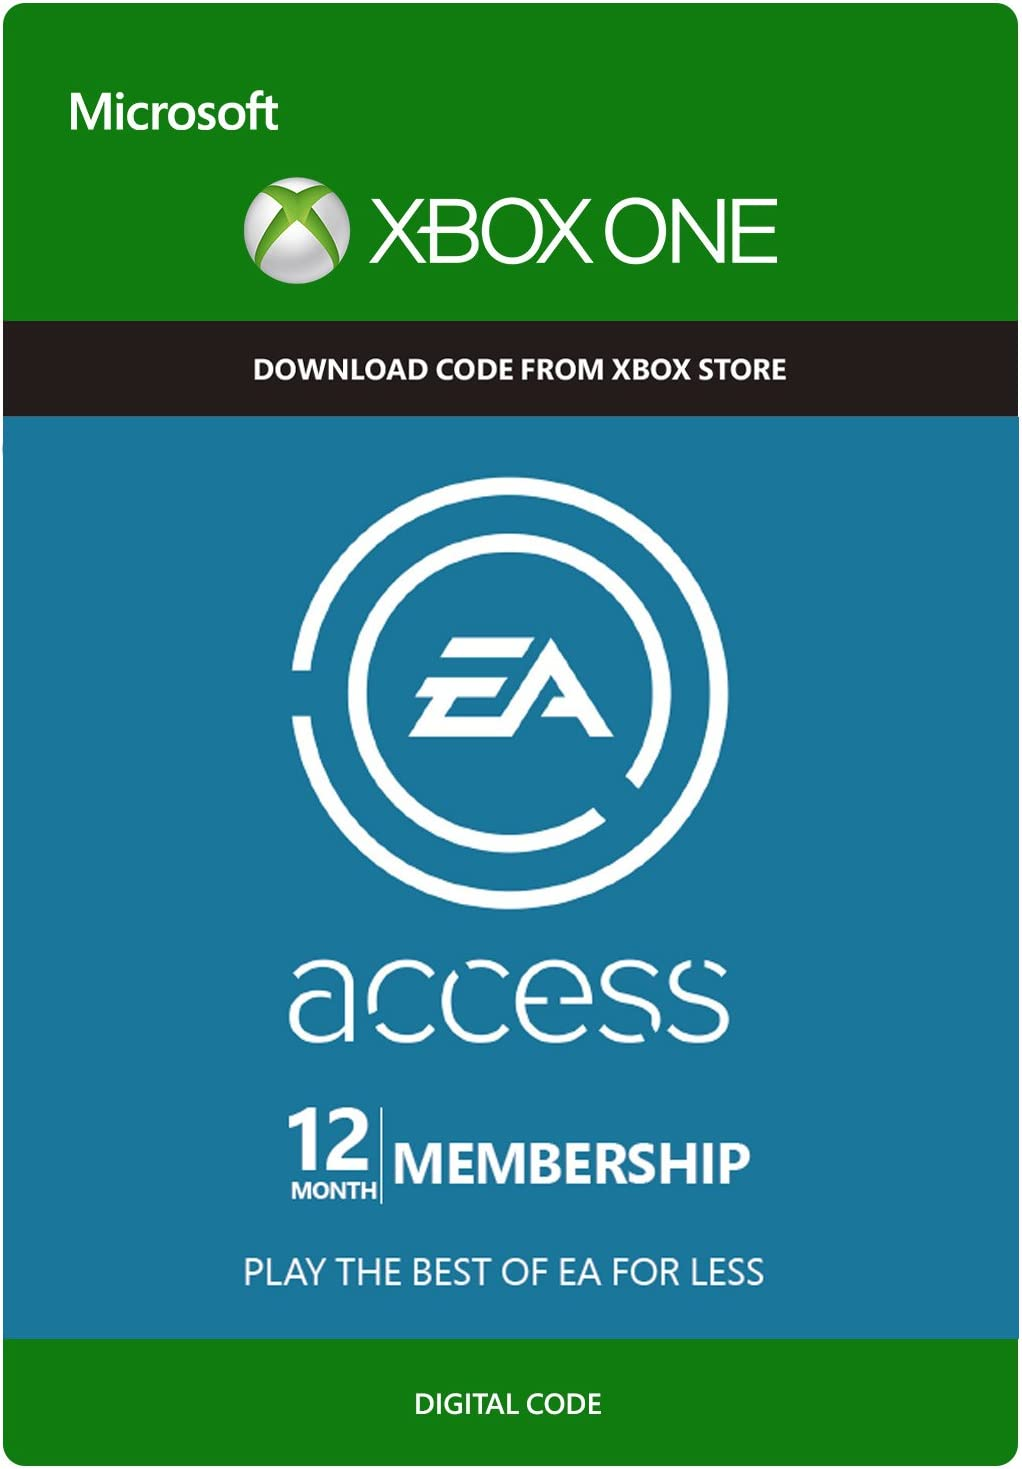 Amazon.com: EA Access 12 Month Subscription - Xbox One ...